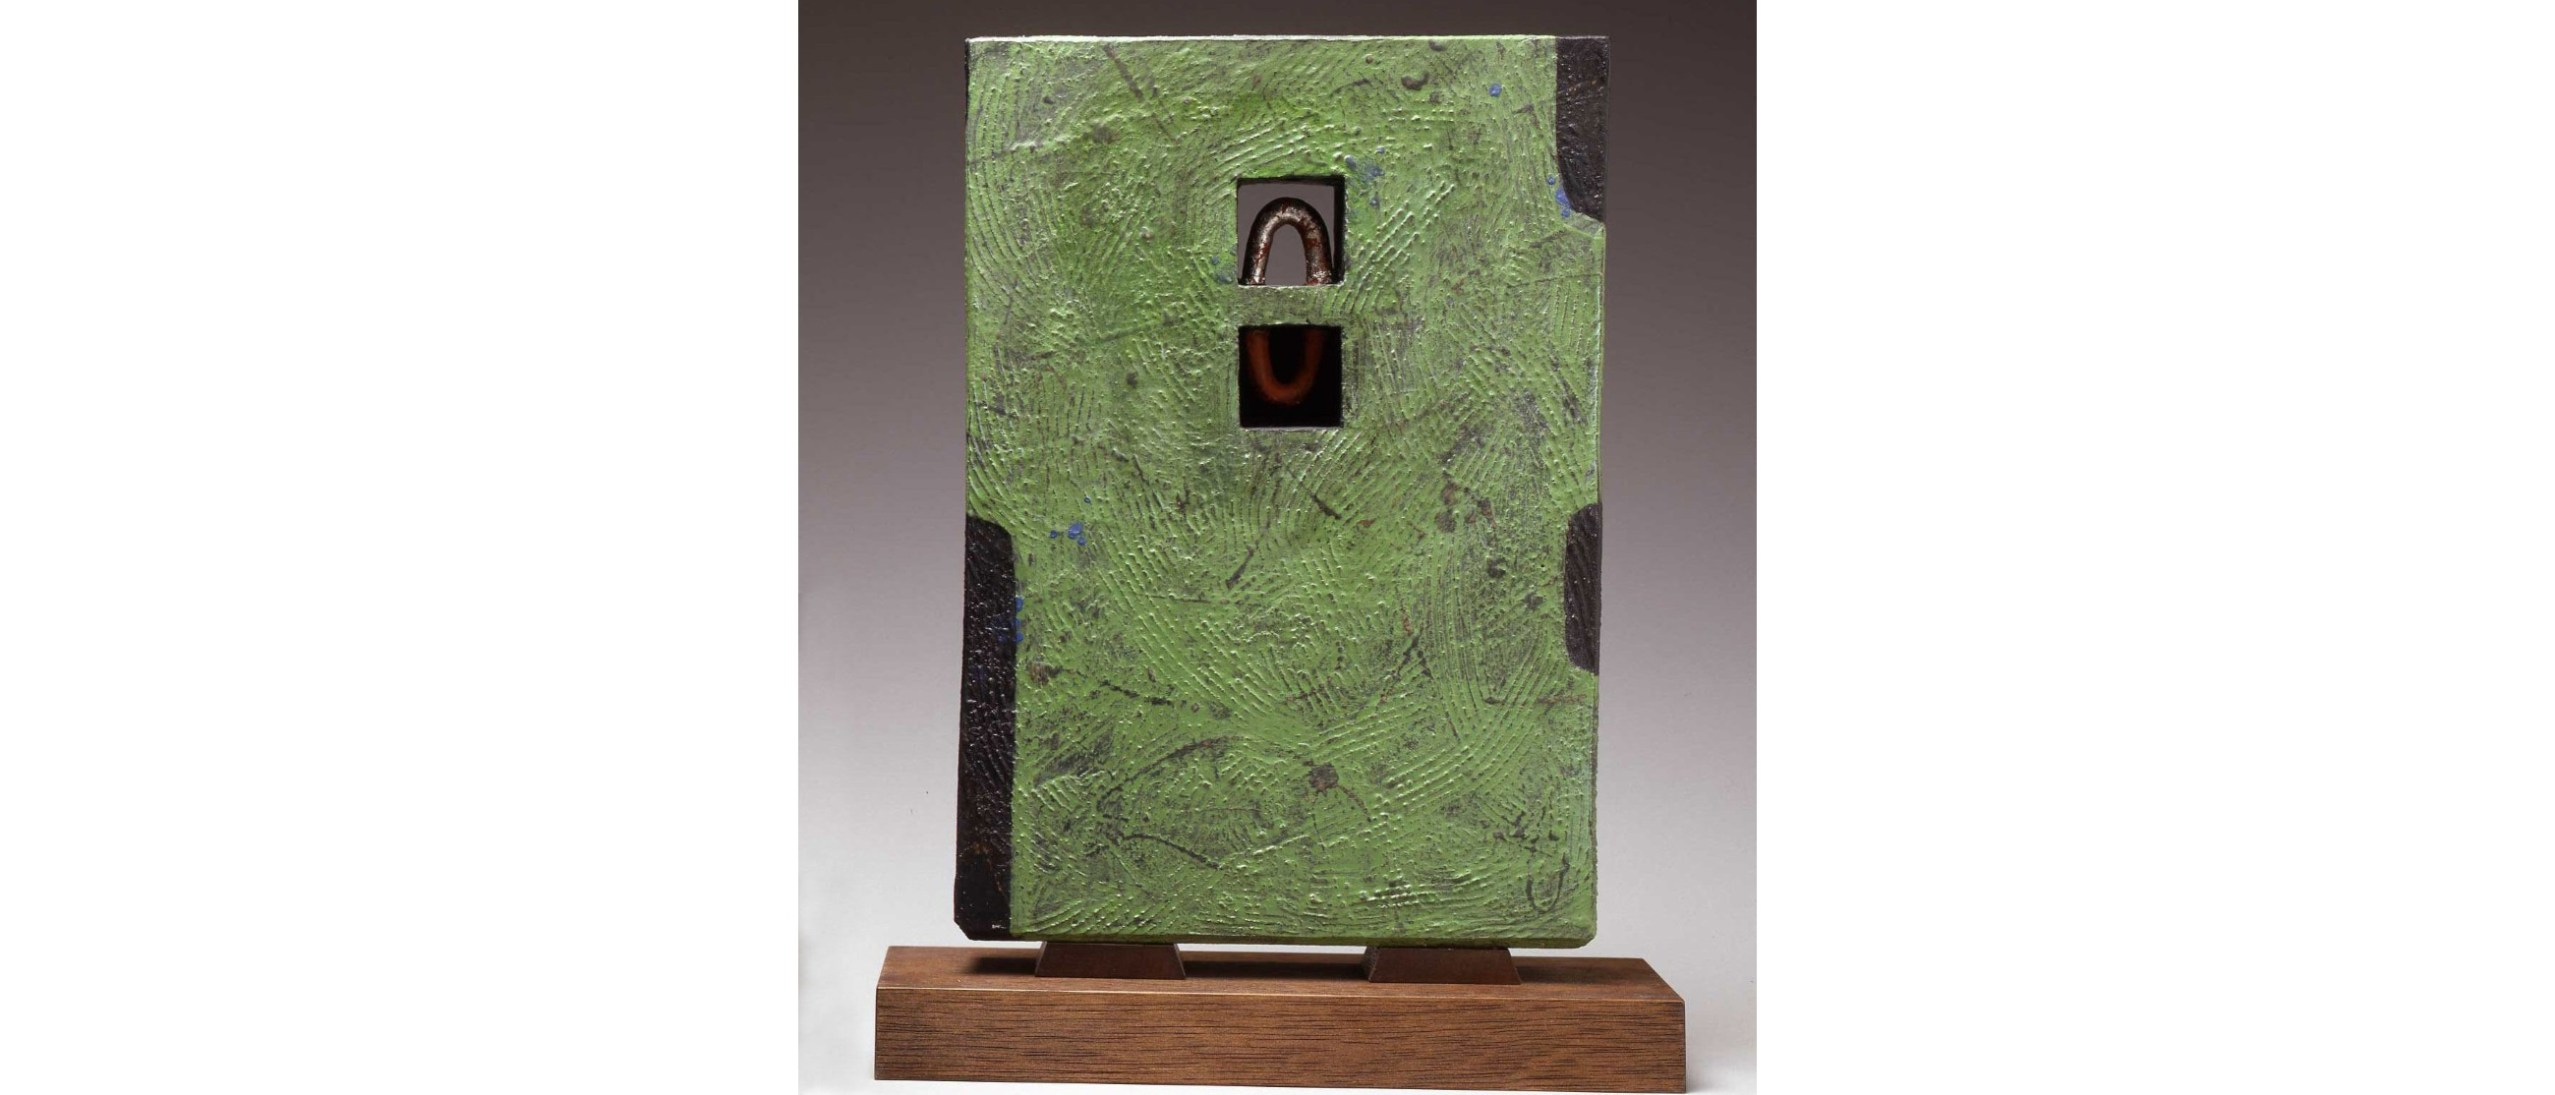 Photo of Verdant Reflections (Ryokuei); Morino Hiroaki Taimei (b. 1934); Japan, Kyoto, Heisei era, 2004; Glazed stoneware on wooden bases; wooden boxes signed and sealed by the artist; Formerly in the Halsey and Alice North Collection, New York, NY; Purchase with funds from Victor and Takako Hauge; Arthur M. Sackler Gallery purchase with funds from Victor and Takako Hauge, S2017.11a–c